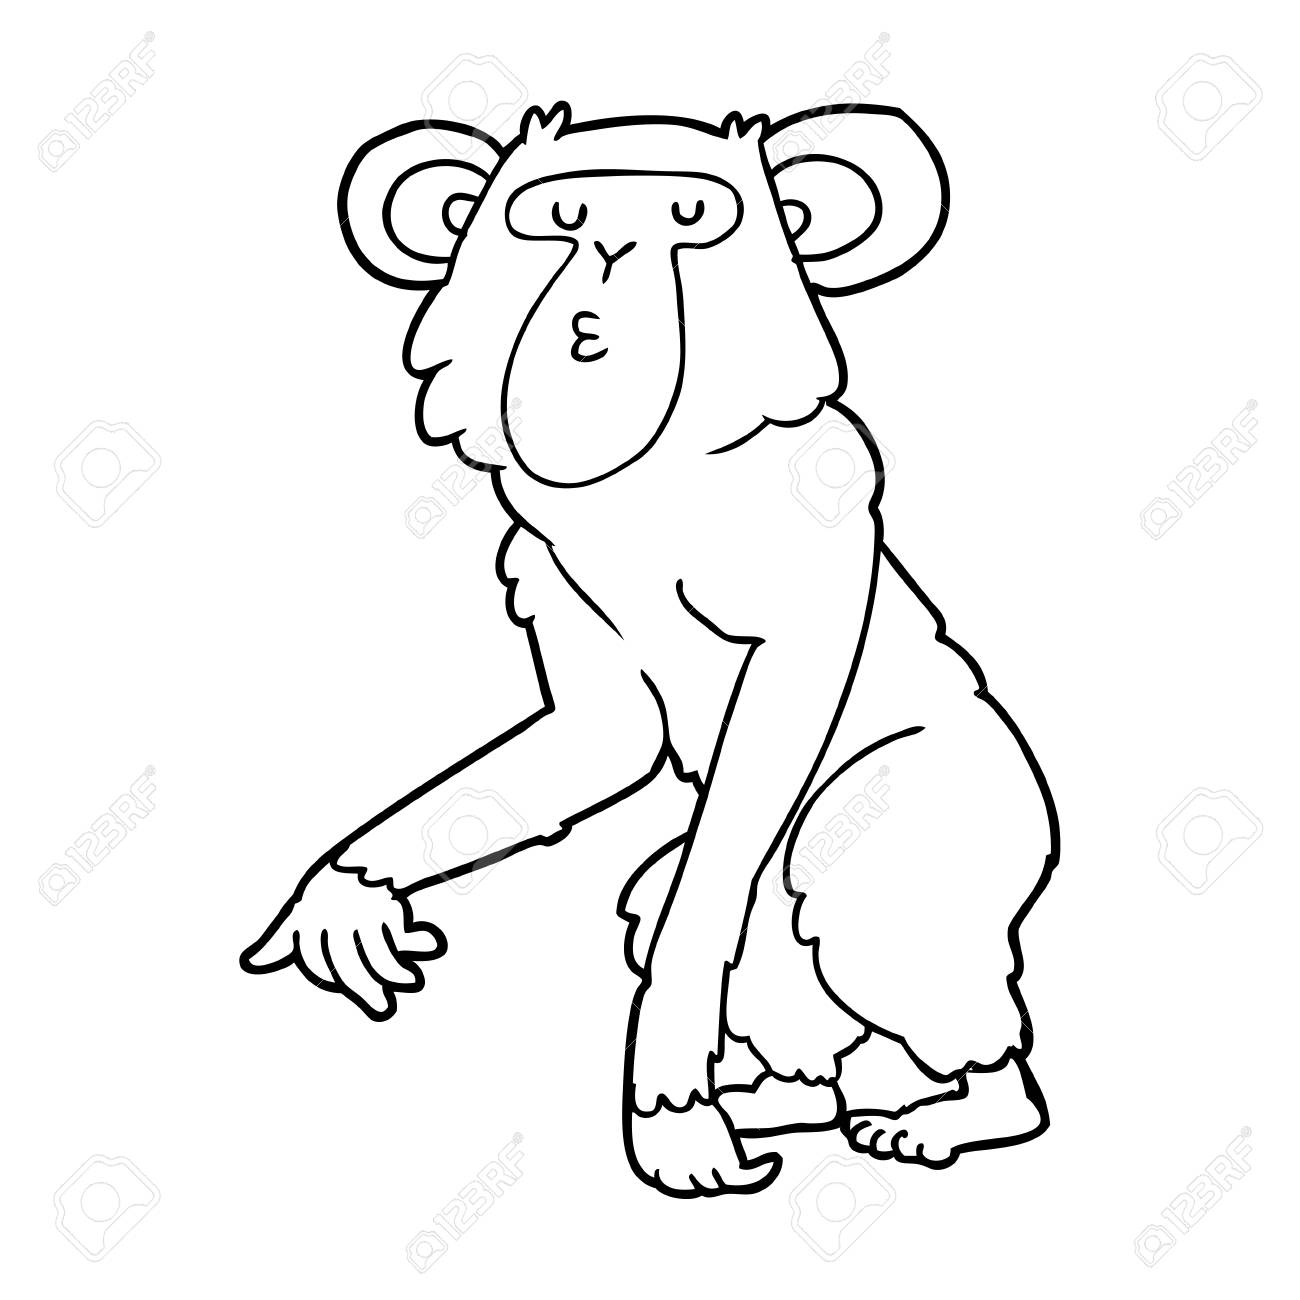 hand drawn cartoon chimpanzee royalty free cliparts vectors and